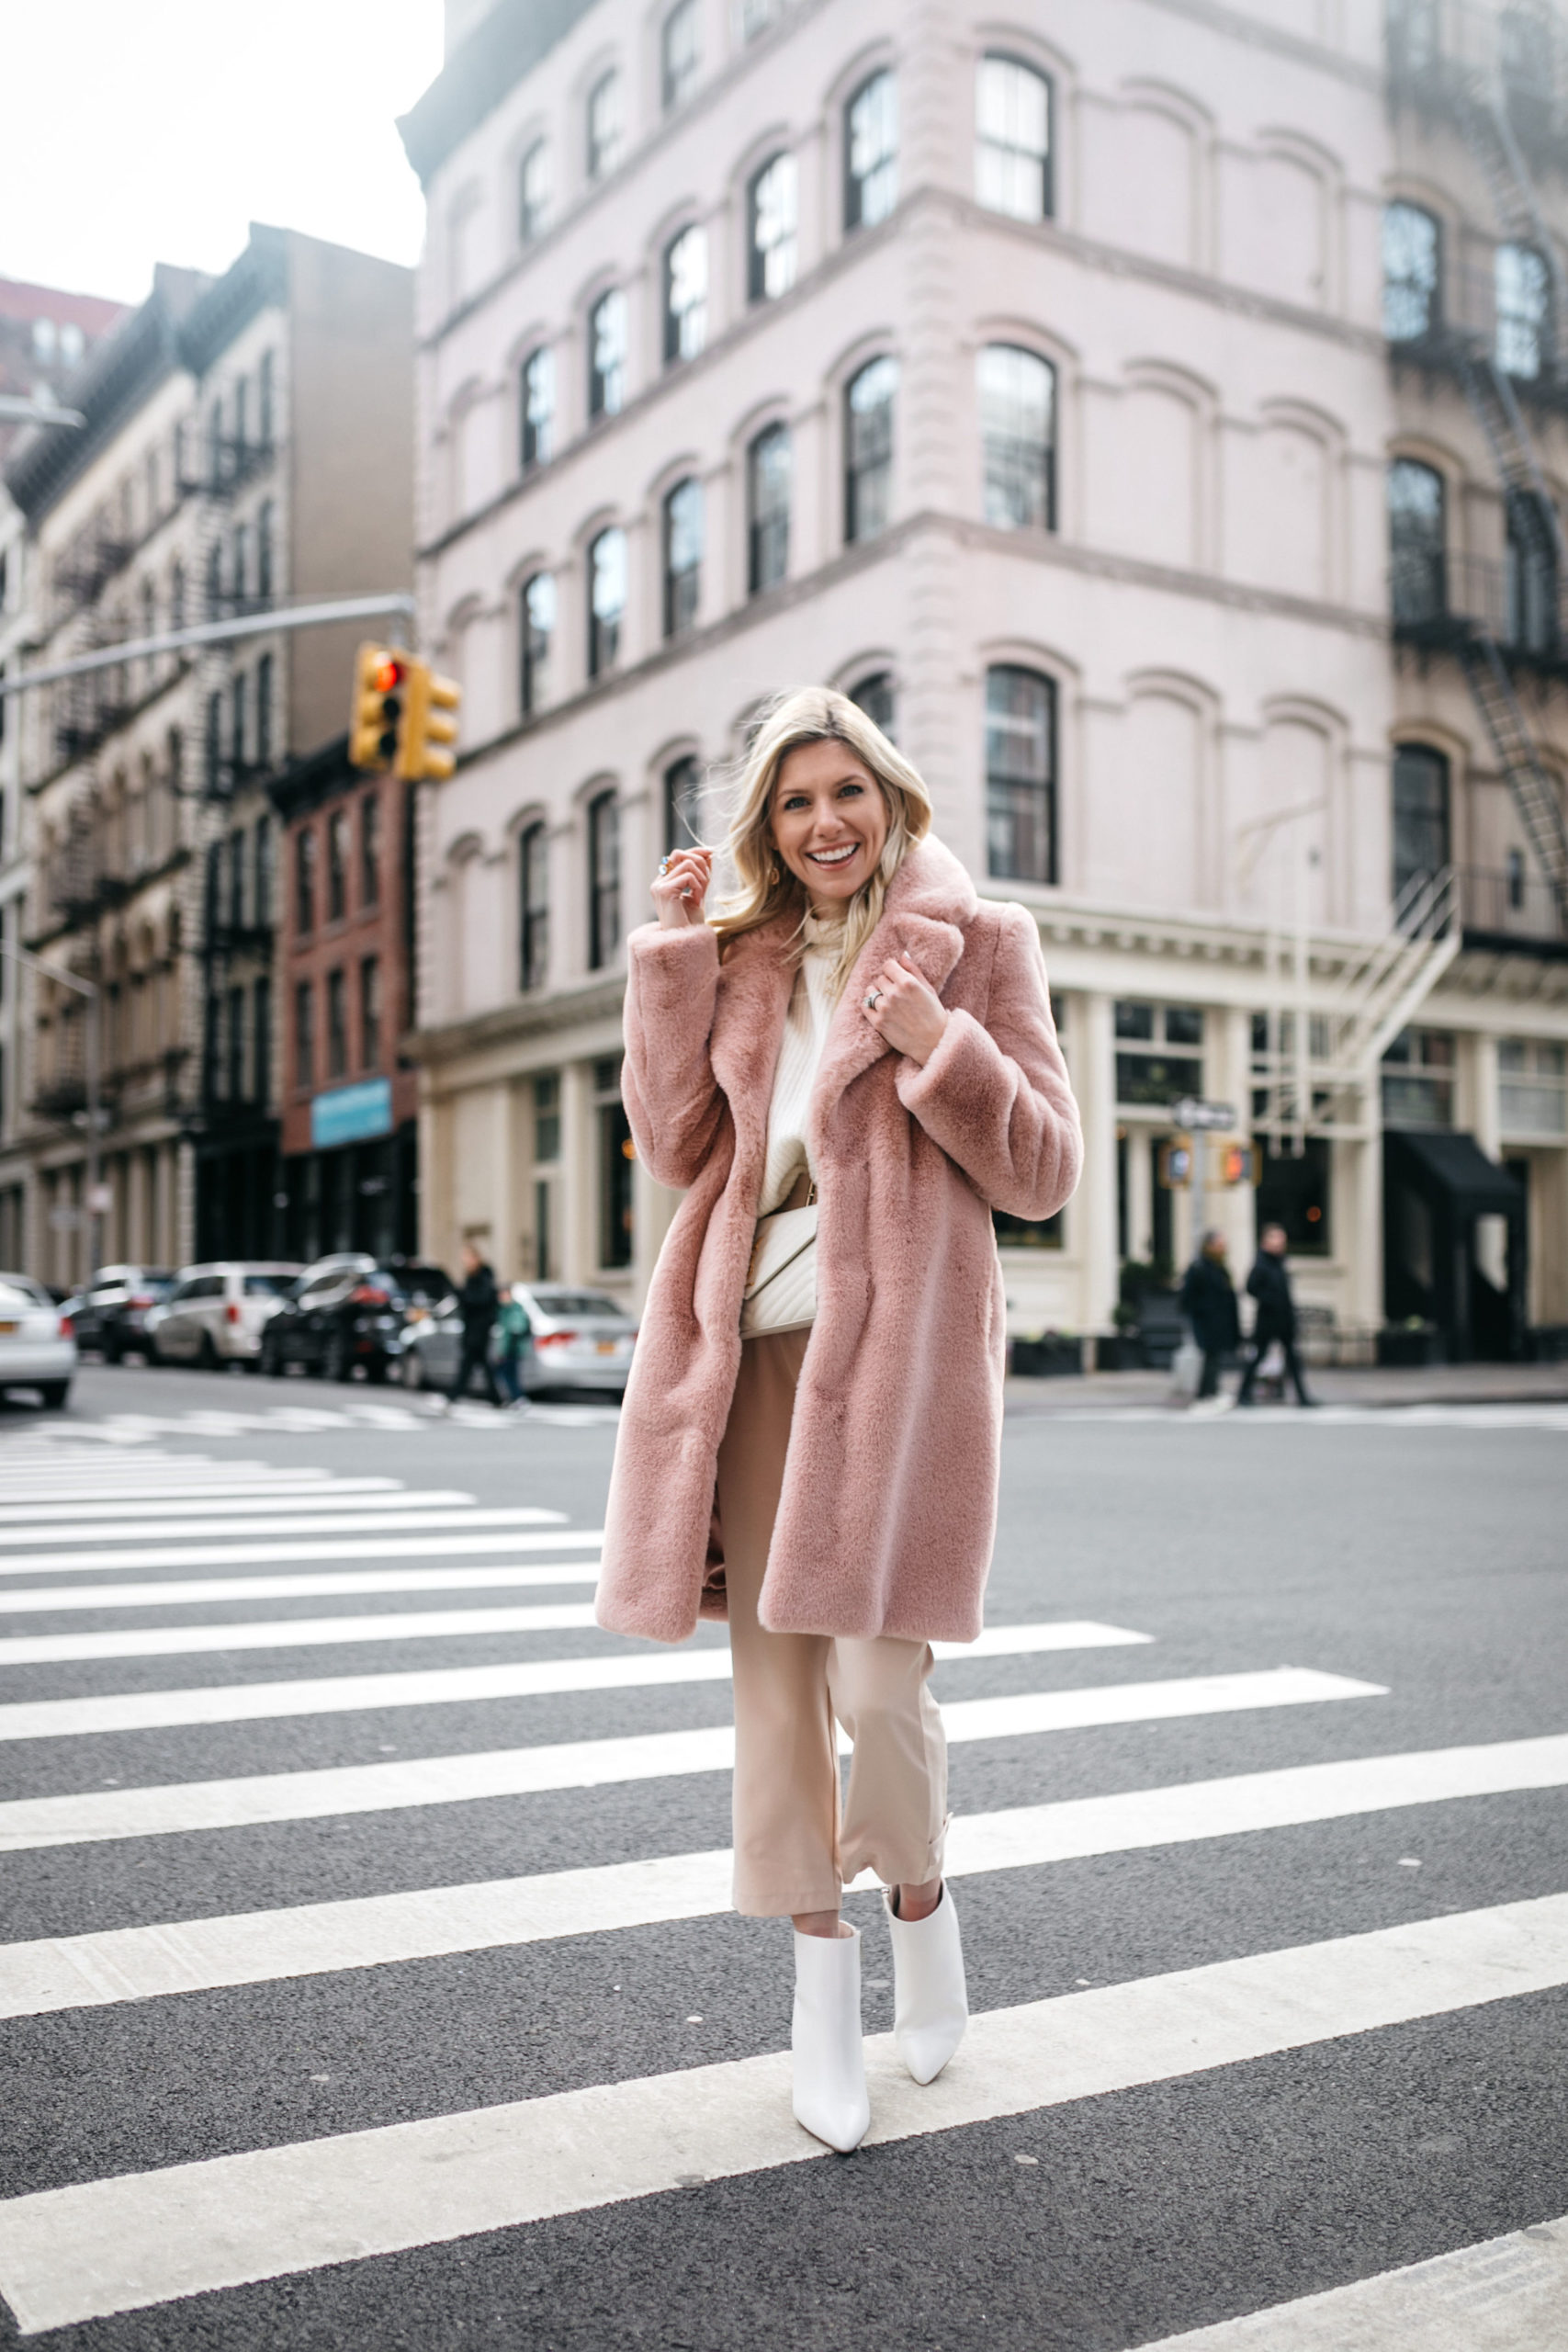 blush outfit for spring